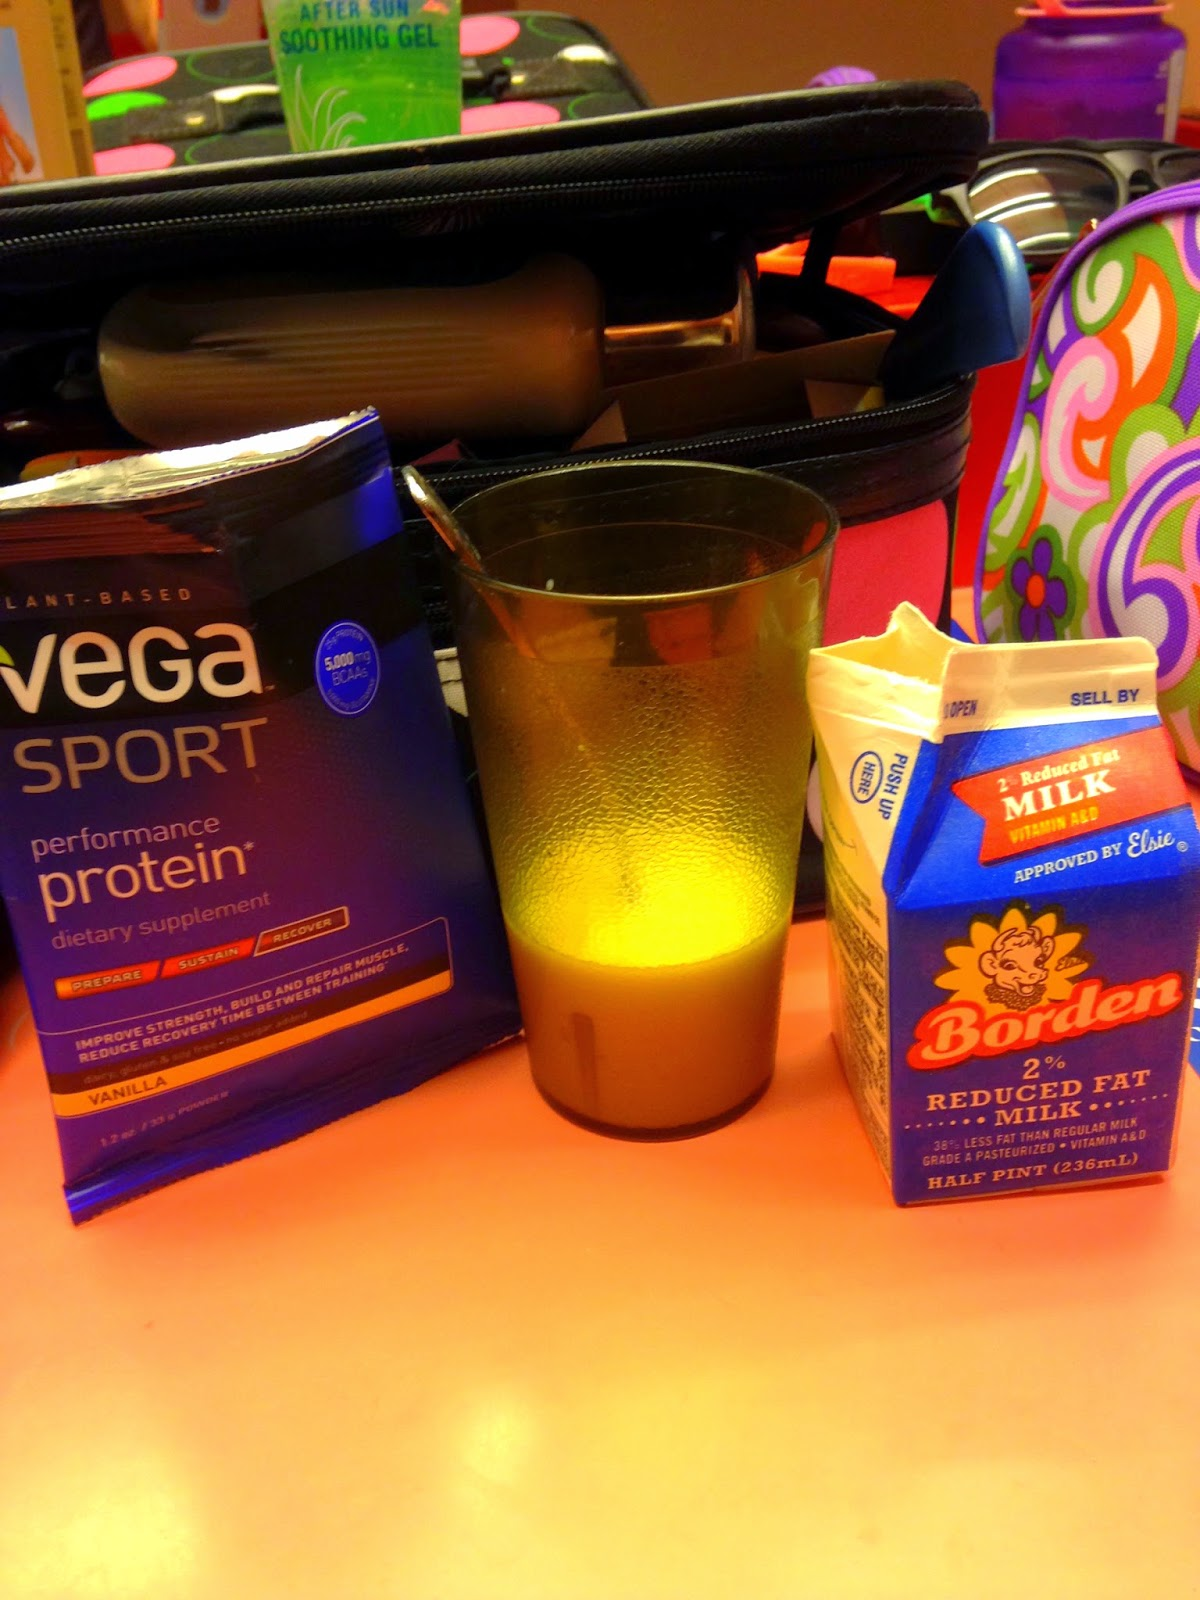 Vega Sport Recovery Performance Protein